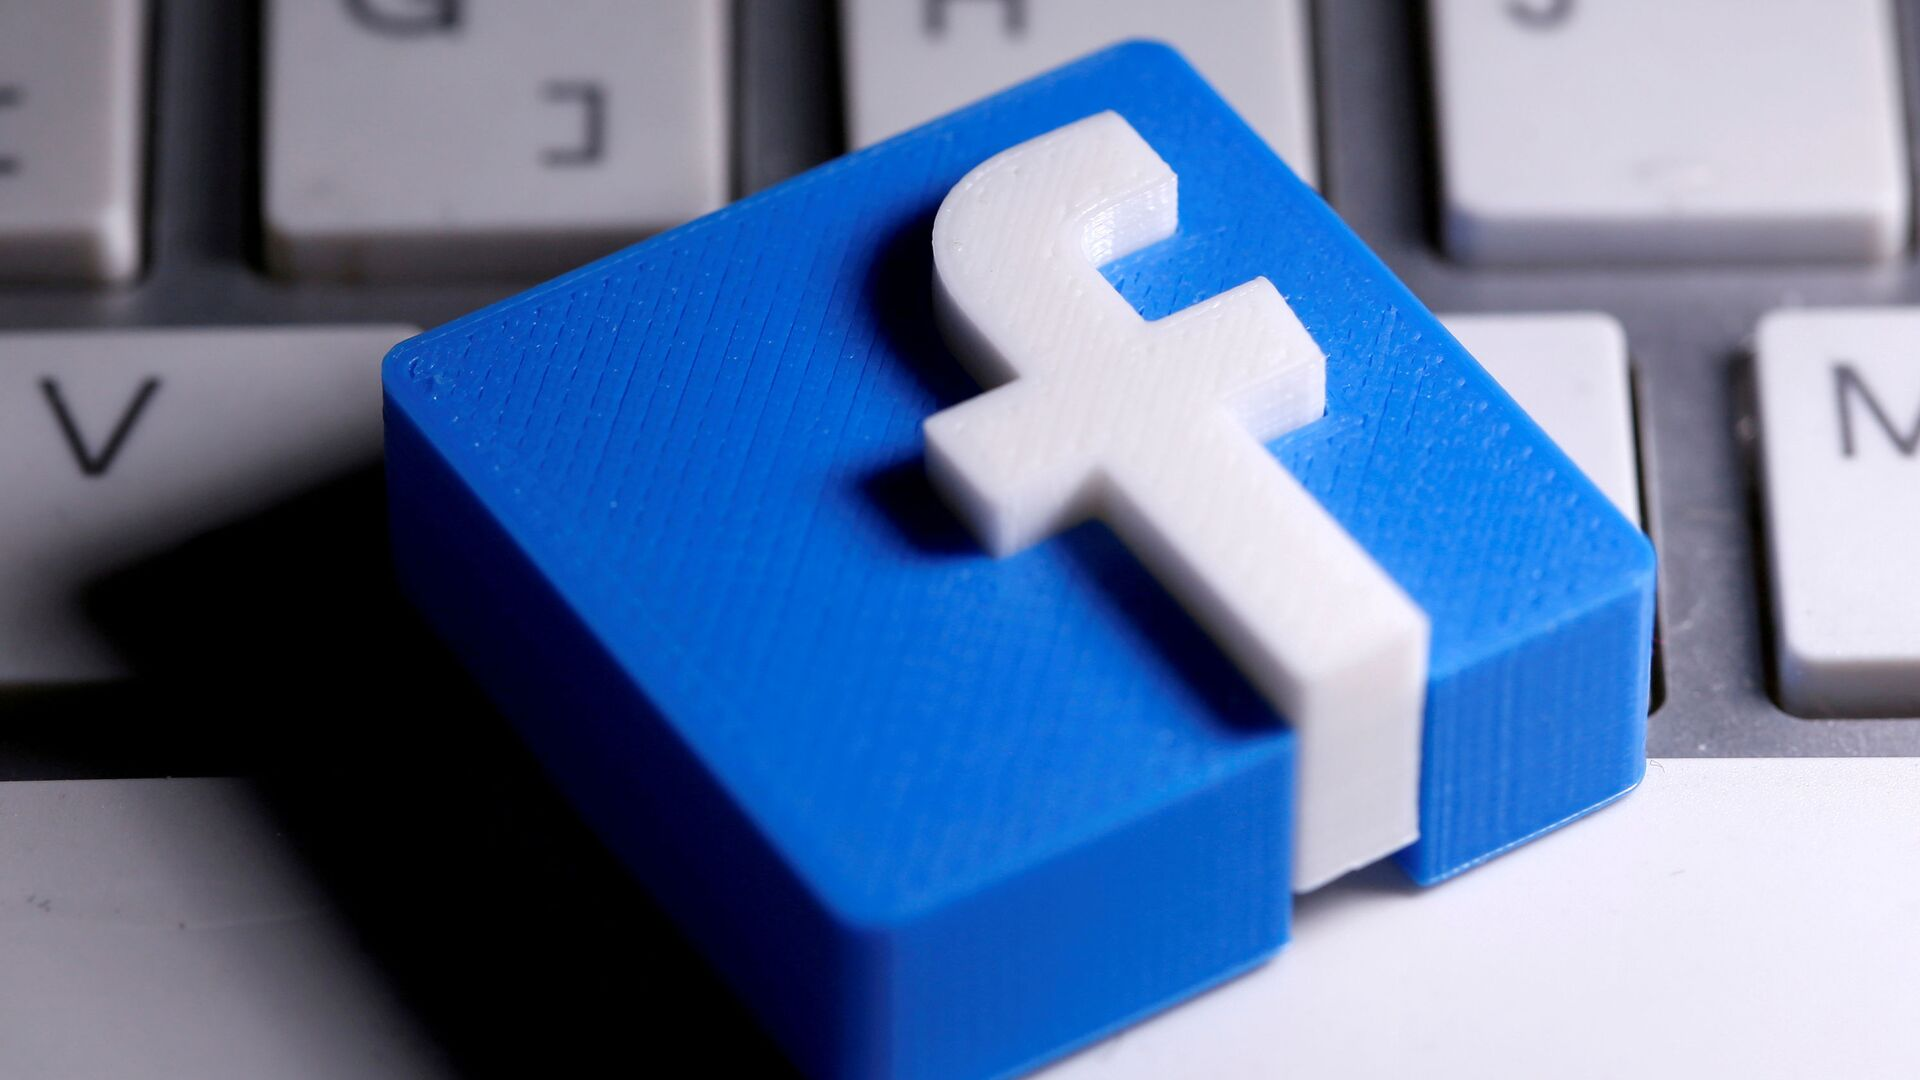 A 3D-printed Facebook logo is seen placed on a keyboard in this illustration taken March 25, 2020.  - Sputnik International, 1920, 14.09.2021